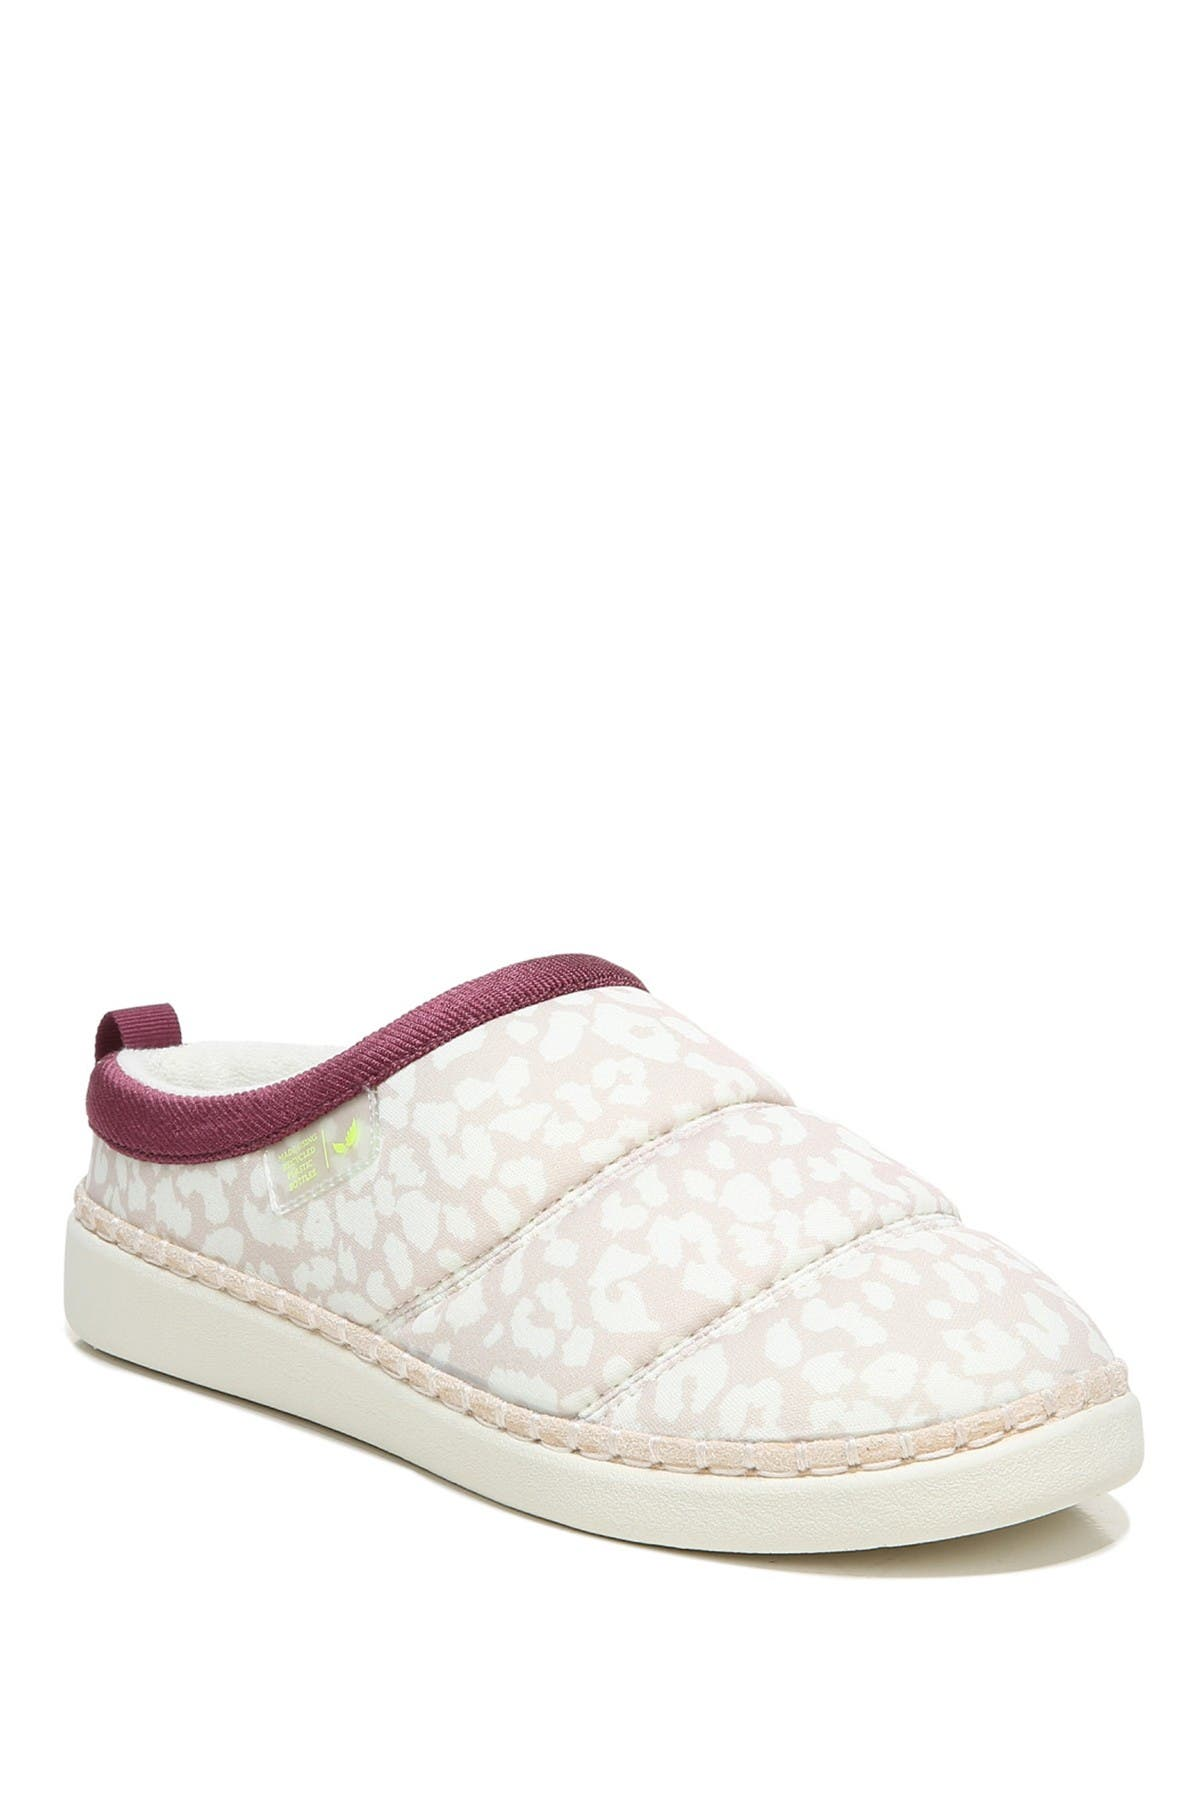 Dr. Scholl's COZY VIBES SLIPPER